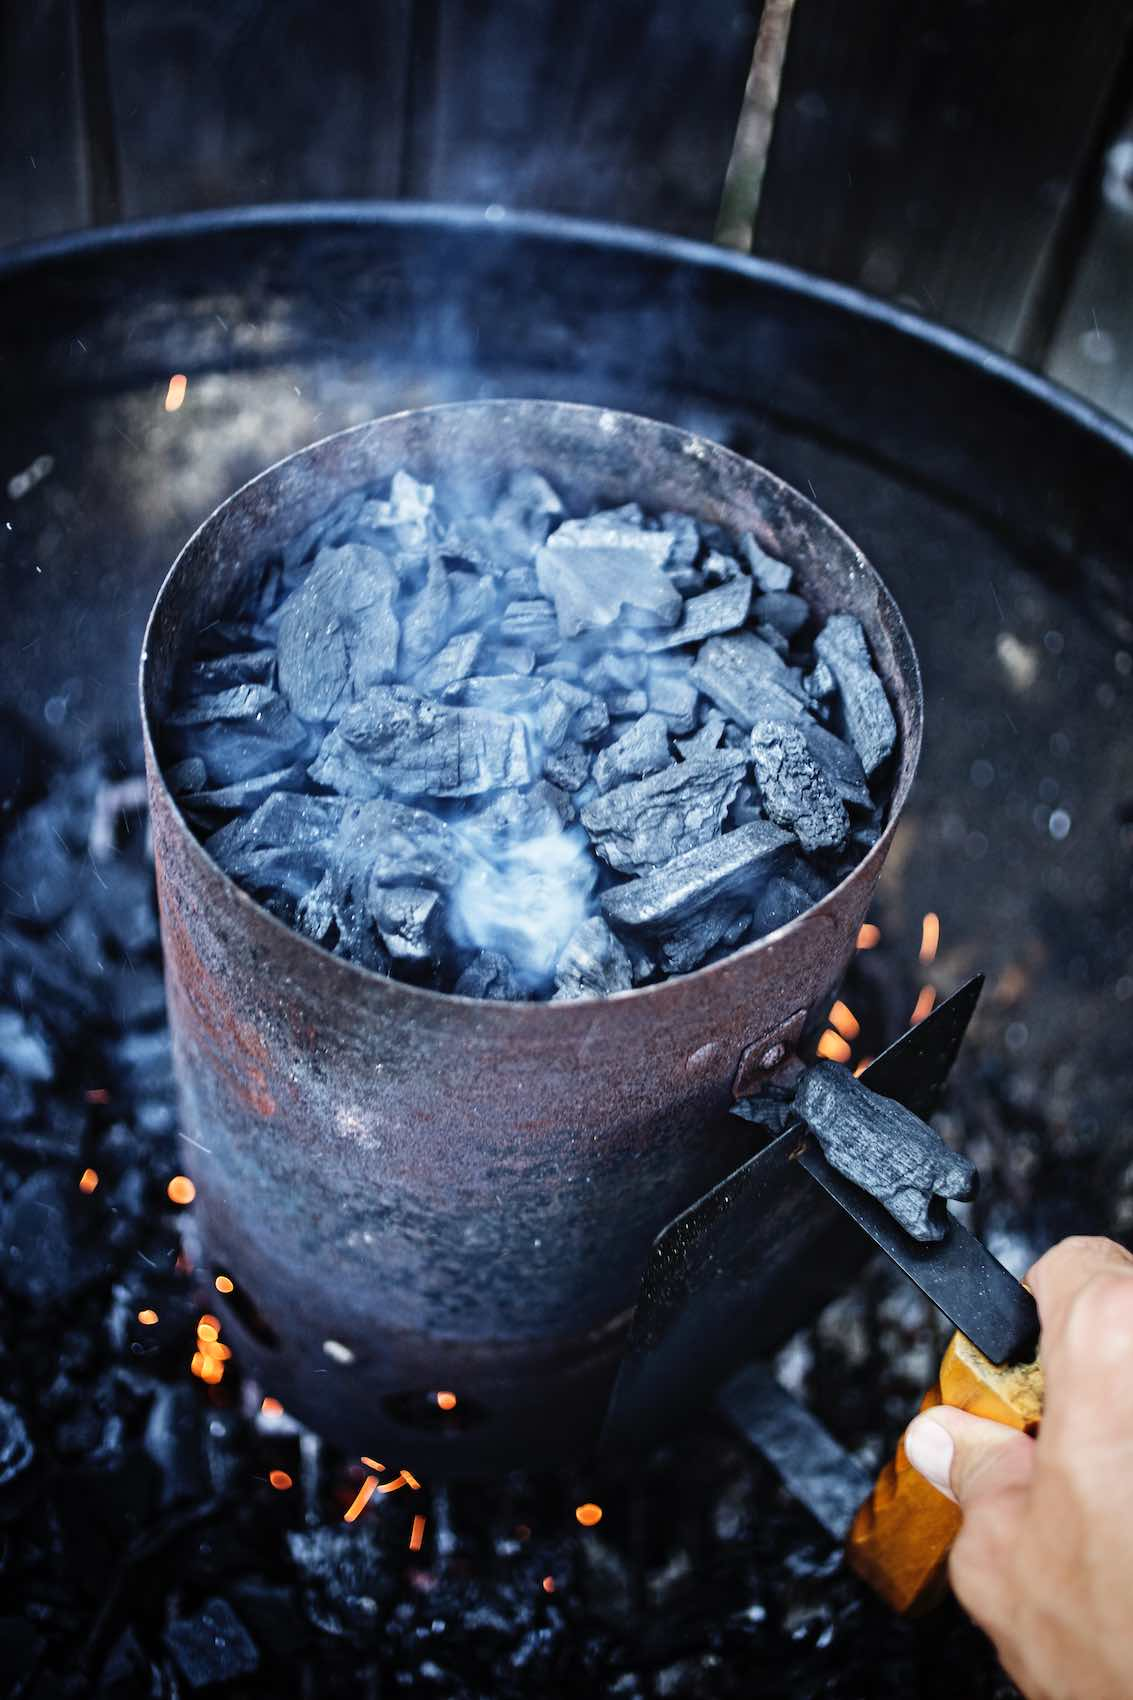 Jody Horton Photography - Smoking charcoal on grill.